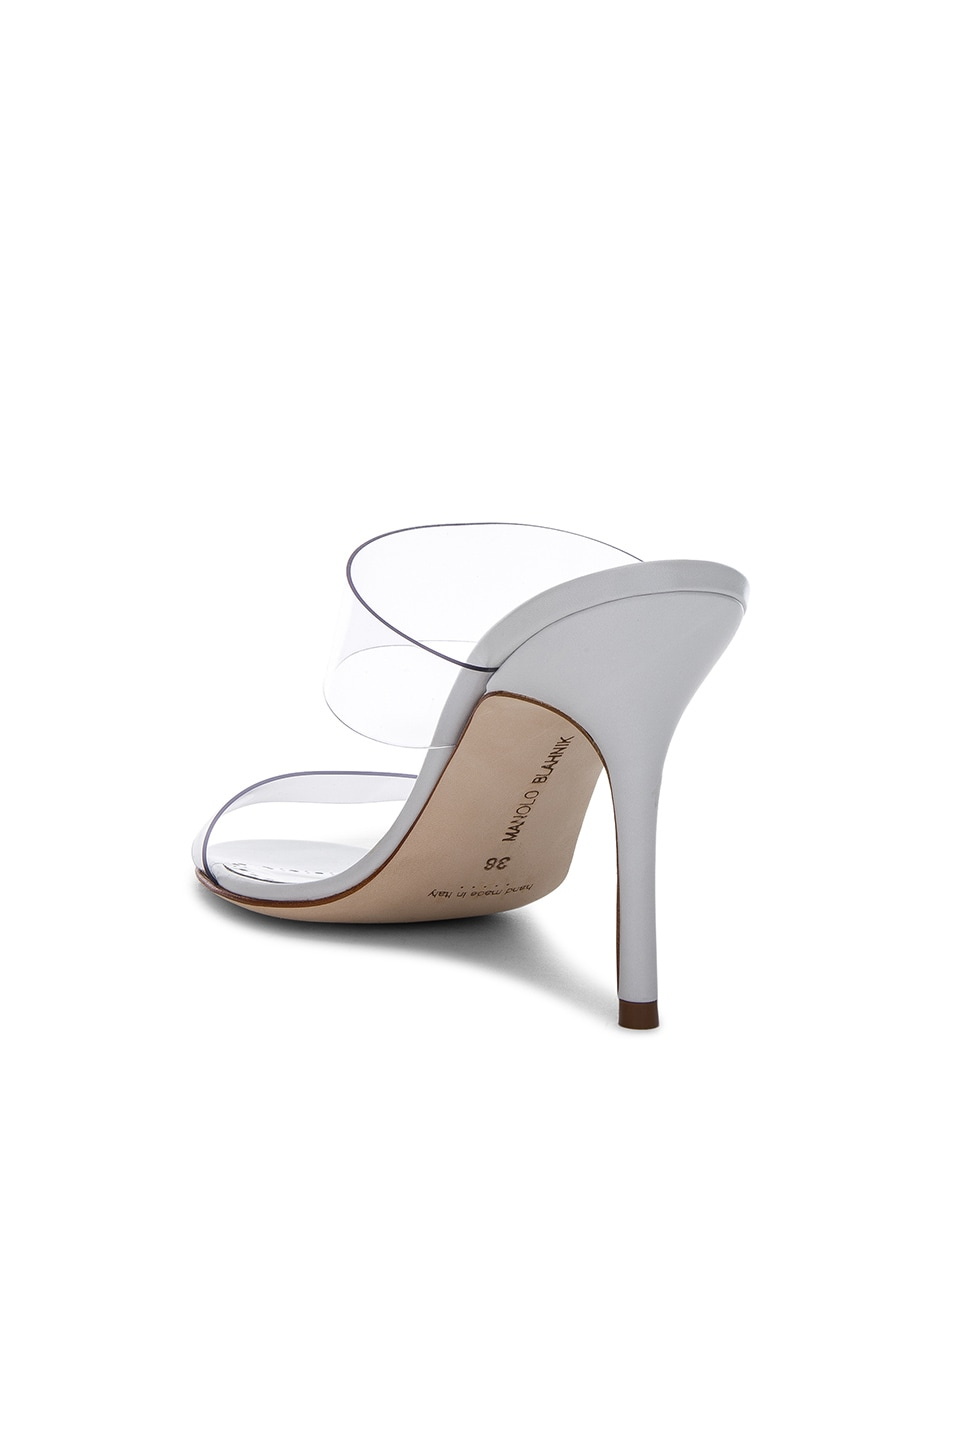 Image 3 of Manolo Blahnik PVC Scolto Sandals in White Leather